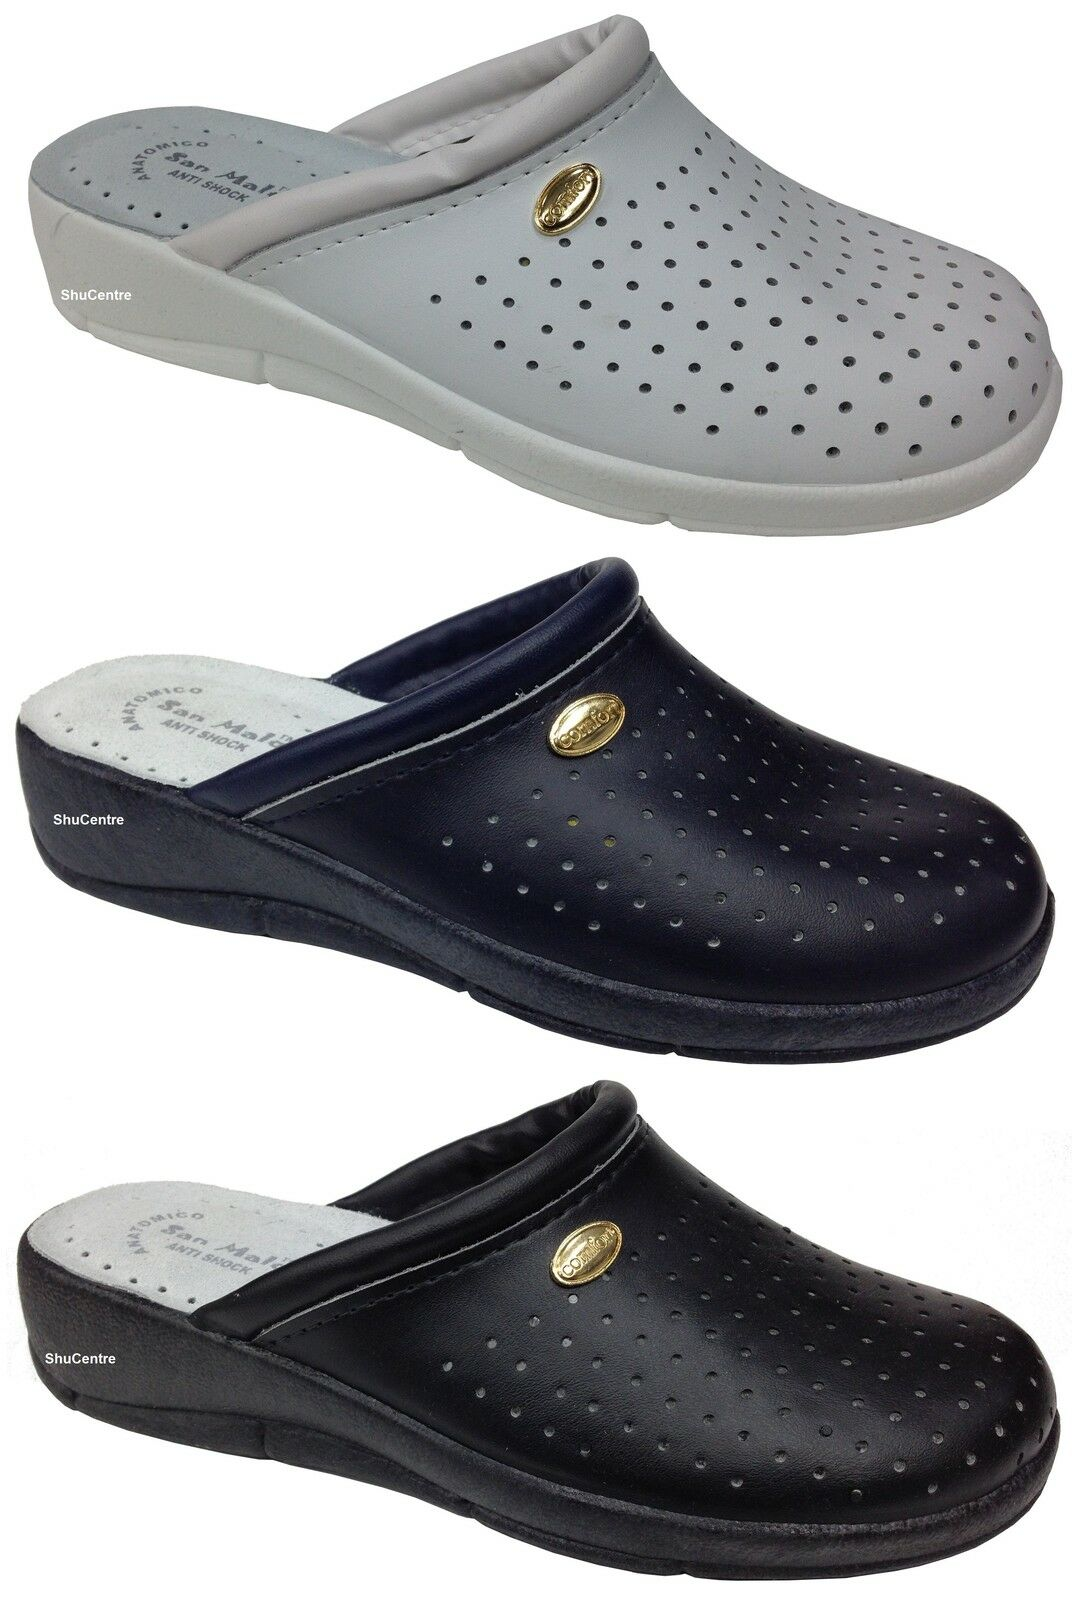 shoes for kitchen workers pre owned cabinets sale dek womens leather nursing mule clogs ladies